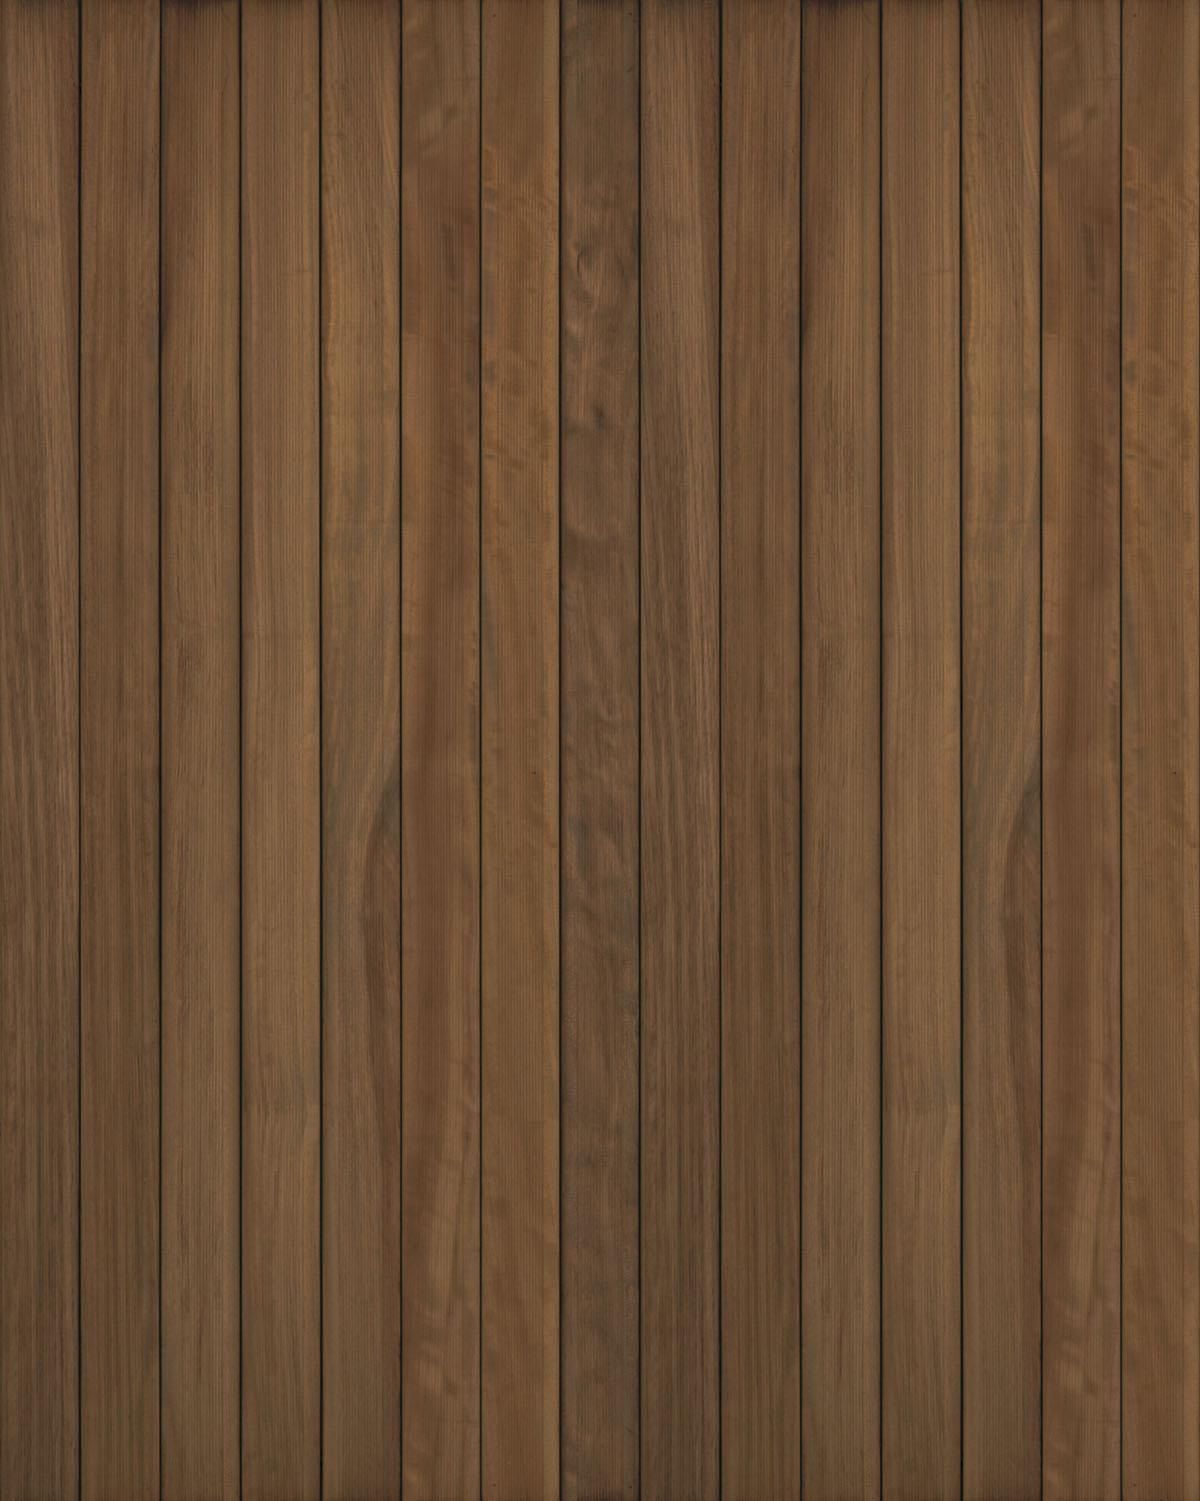 To Access More Of These Seamless Wood Texture Visit Sketchup Texture 纹理 Pinterest Google